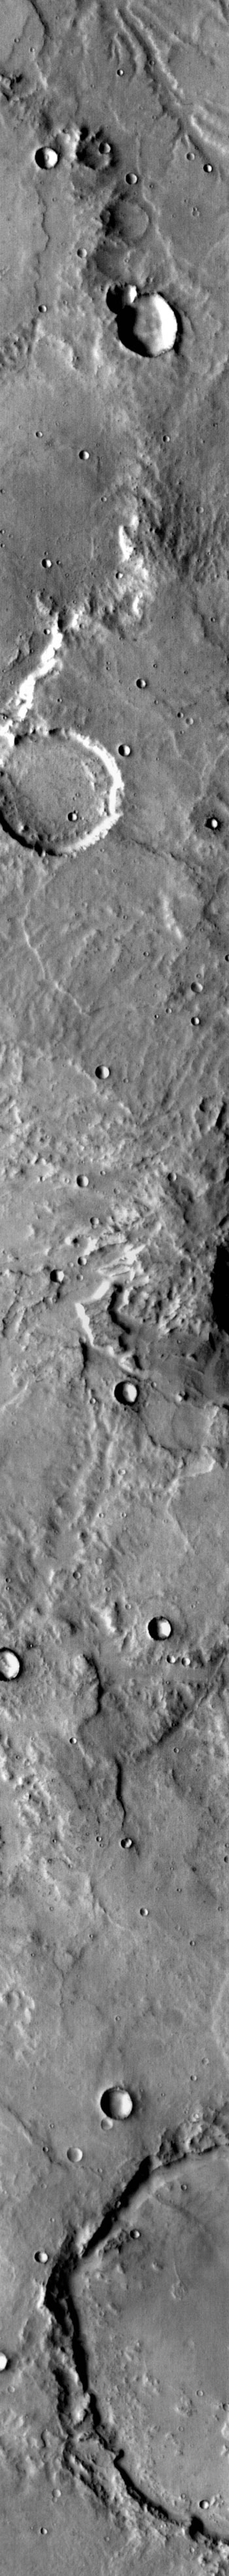 NASA's 2001 Mars Odyssey spacecraft spies what looks like a little beetle at the top of this image.